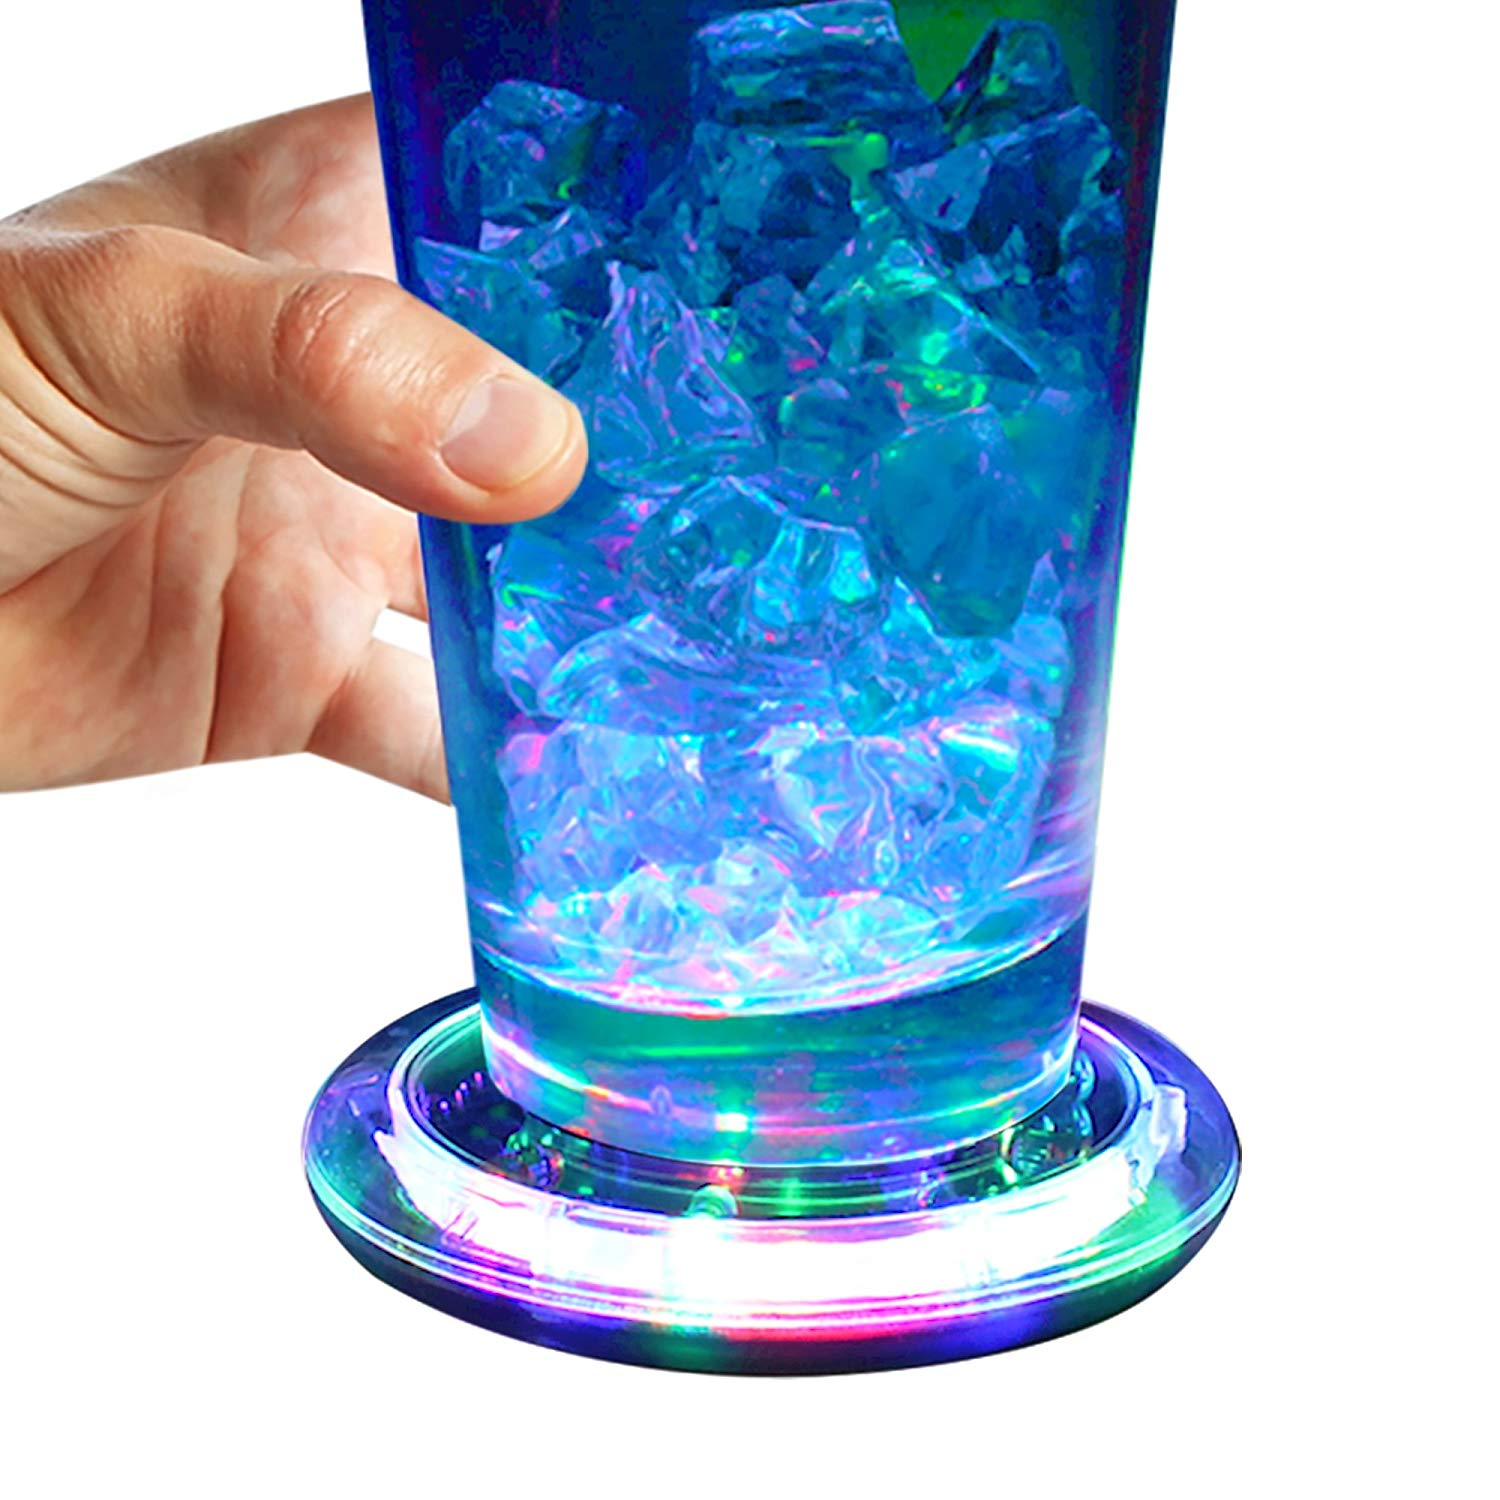 Light-Up Flashing Multi-Color Infinity Tunnel LED Drink Coaster or Display Base